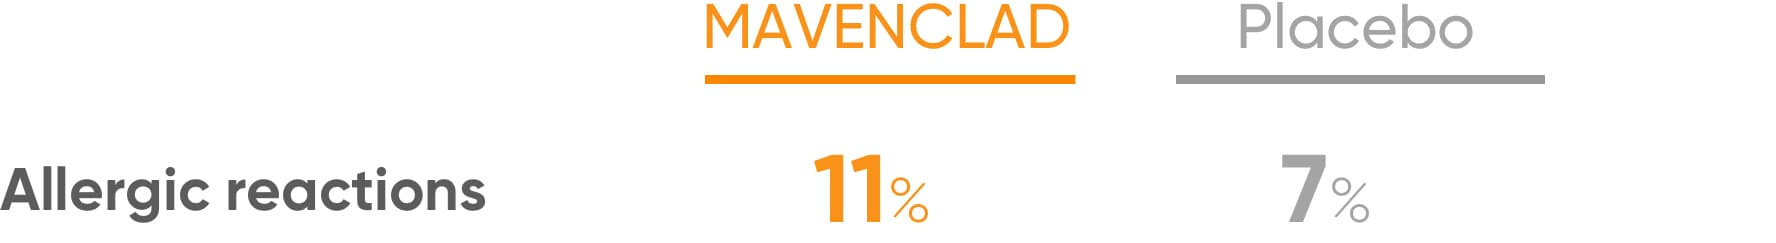 Chart showing percentage of allergic reactions in MAVENCLAD® compared to a placebo